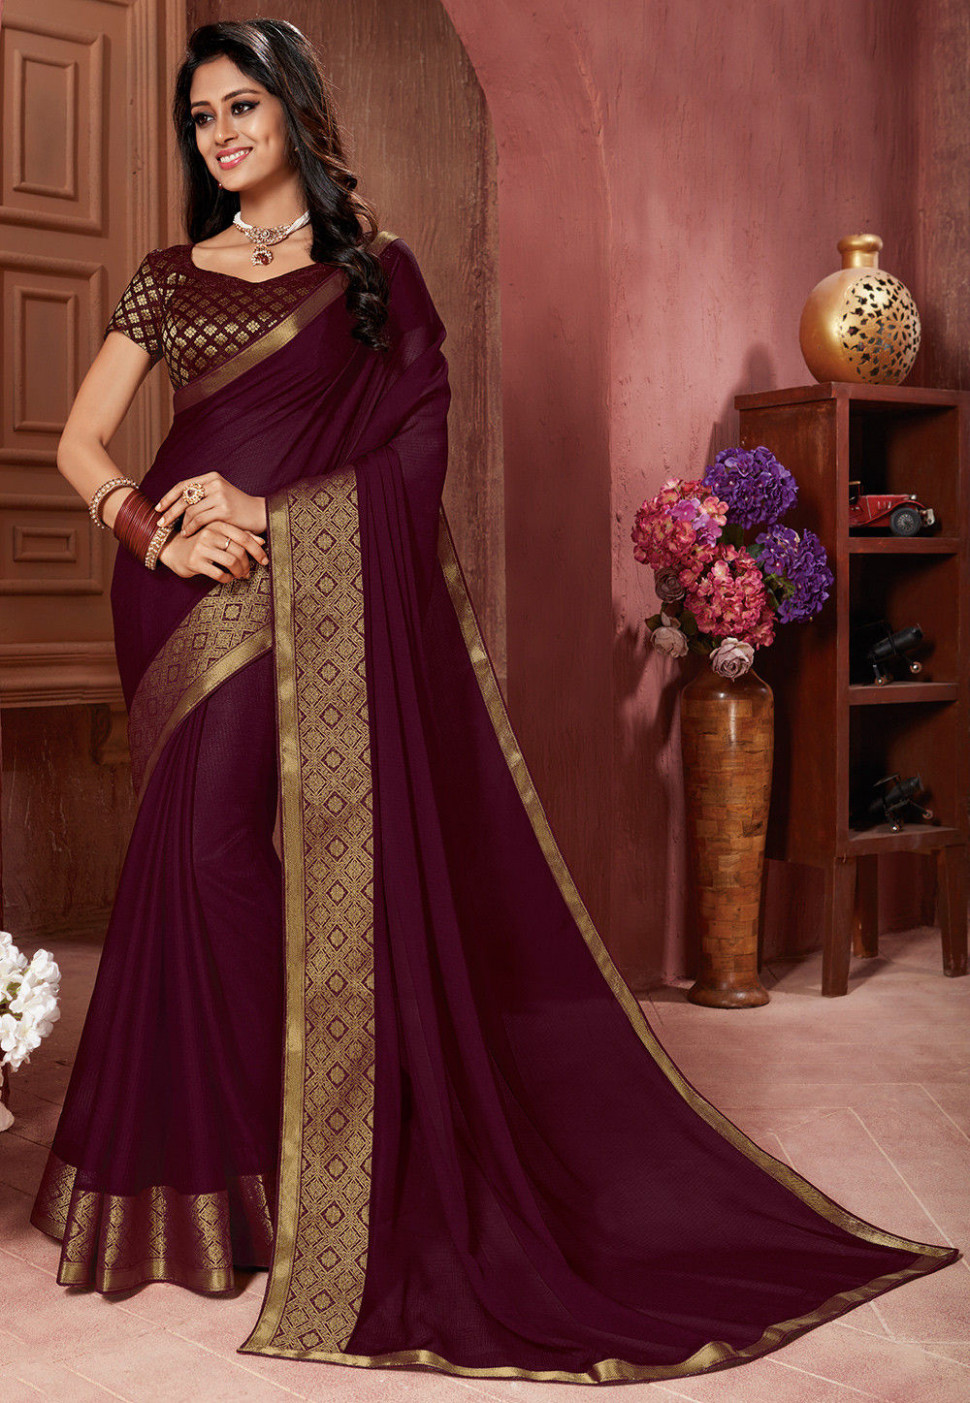 Woven Border Chiffon Saree in Wine : SFVA704 - chiffon saree